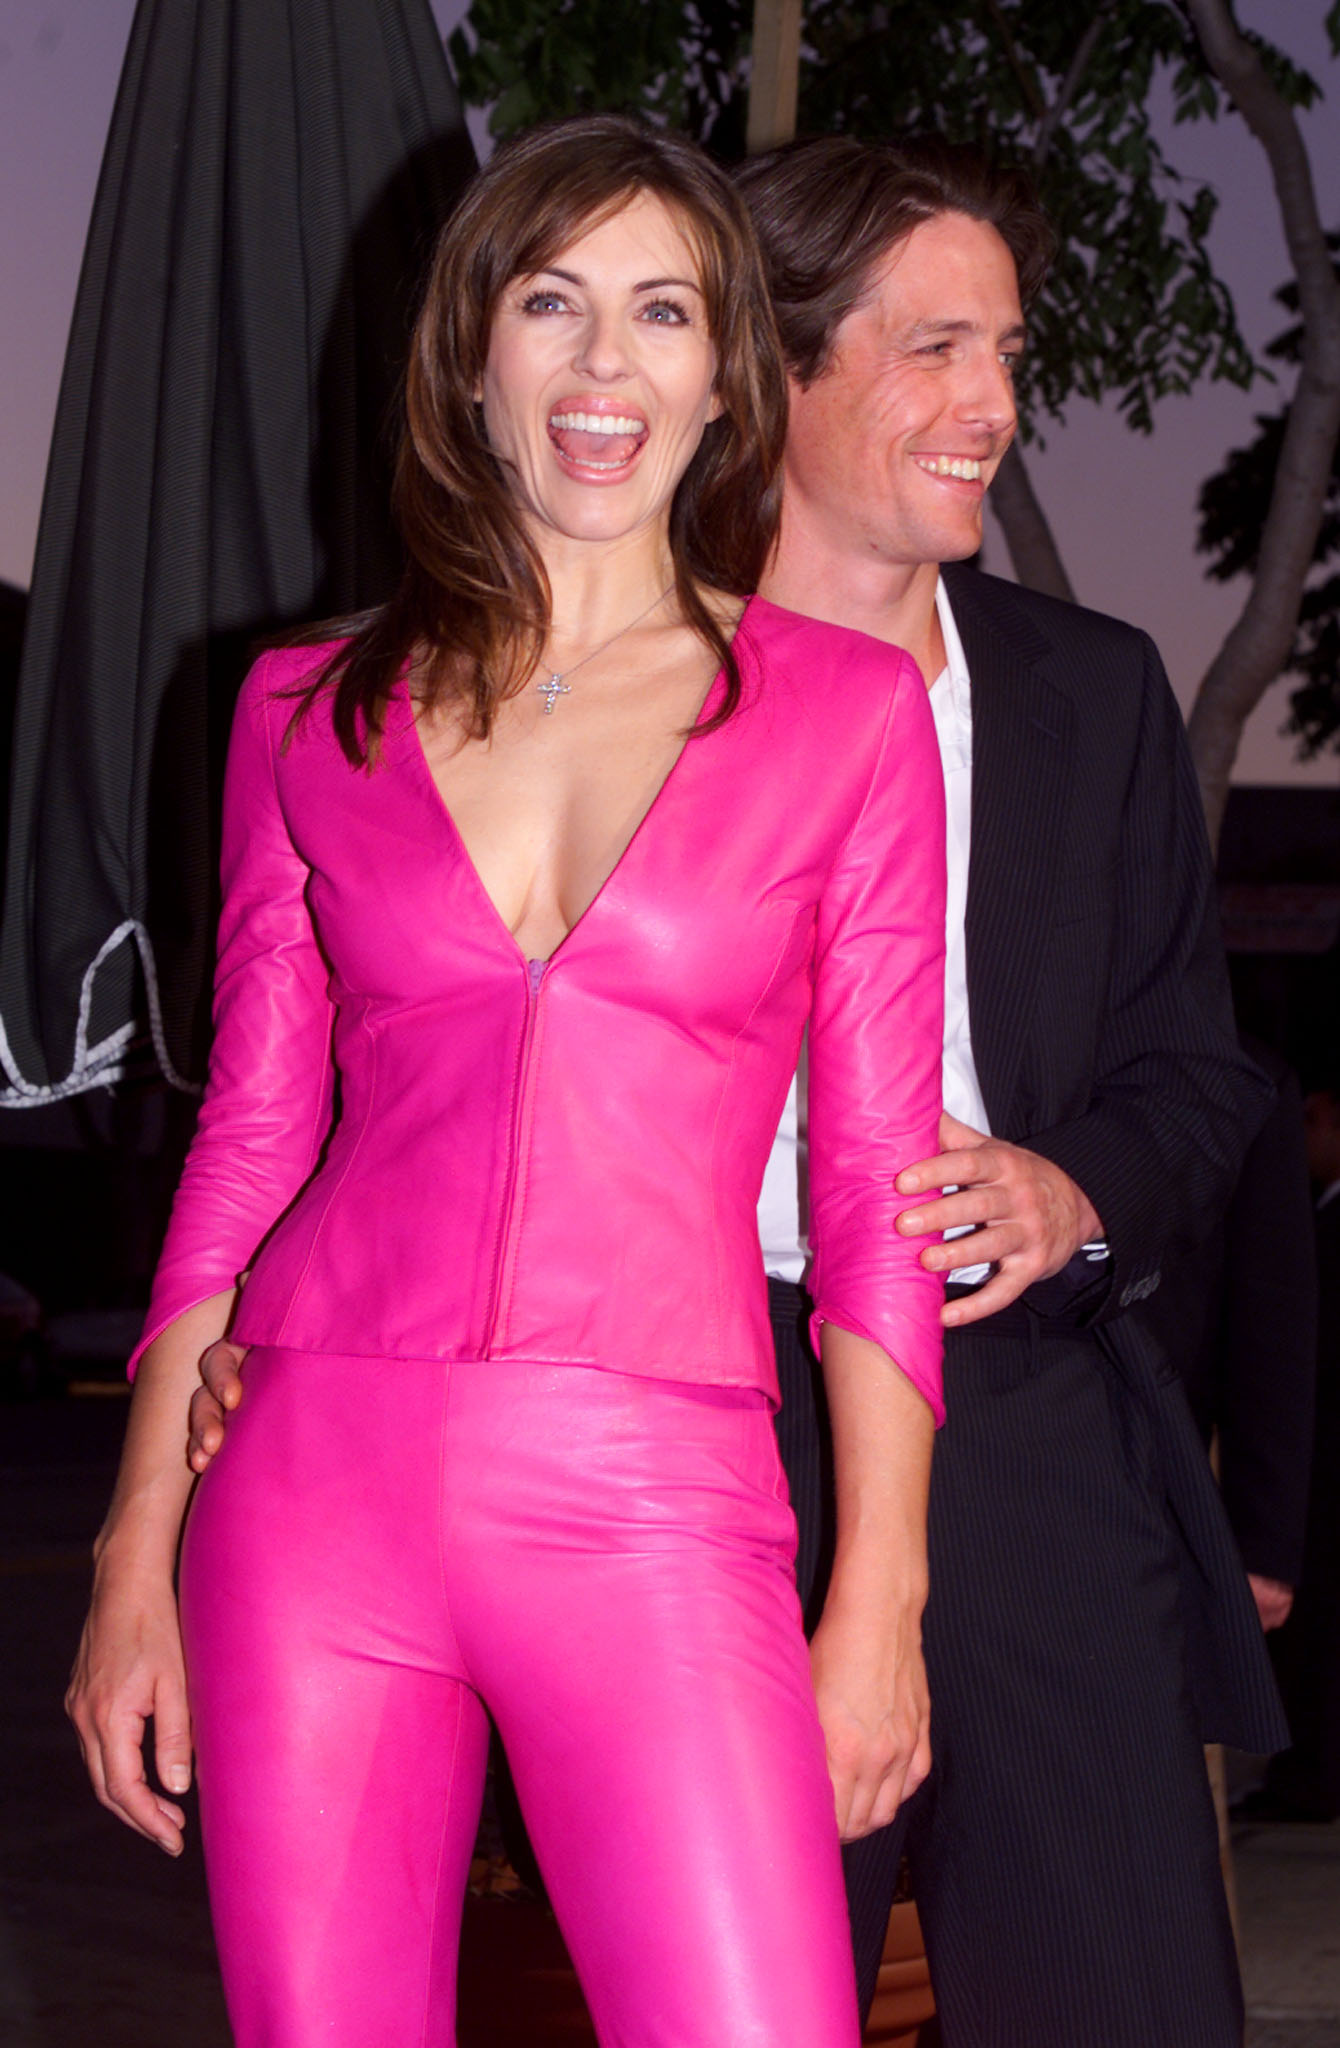 """Hugh Grant, star of the new romantic comedy film """" Mickey Blue Eyes"""" poses with girlfriend Elizabeth Hurley as they arrive for the film's Los Angeles premiere August 17. Hurley, wearing a shocking pink Versace pantsuit, produced the film, which features Grant as an English art dealer who becomes involved in outrageous criminal activity with his girlfriend's Mob-connected father.  FSP/AA"""